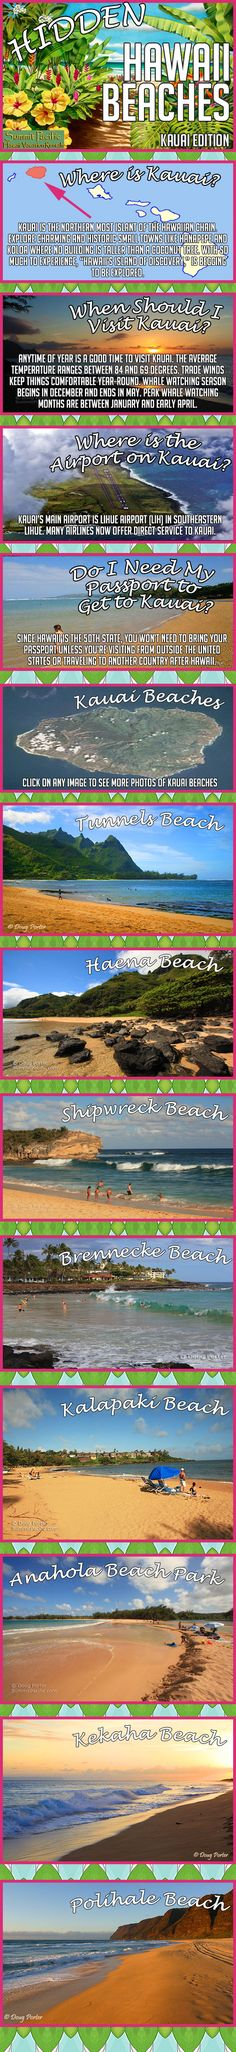 Hidden Hawaii Beaches - Kauai Edition - www.SummitPacific.com